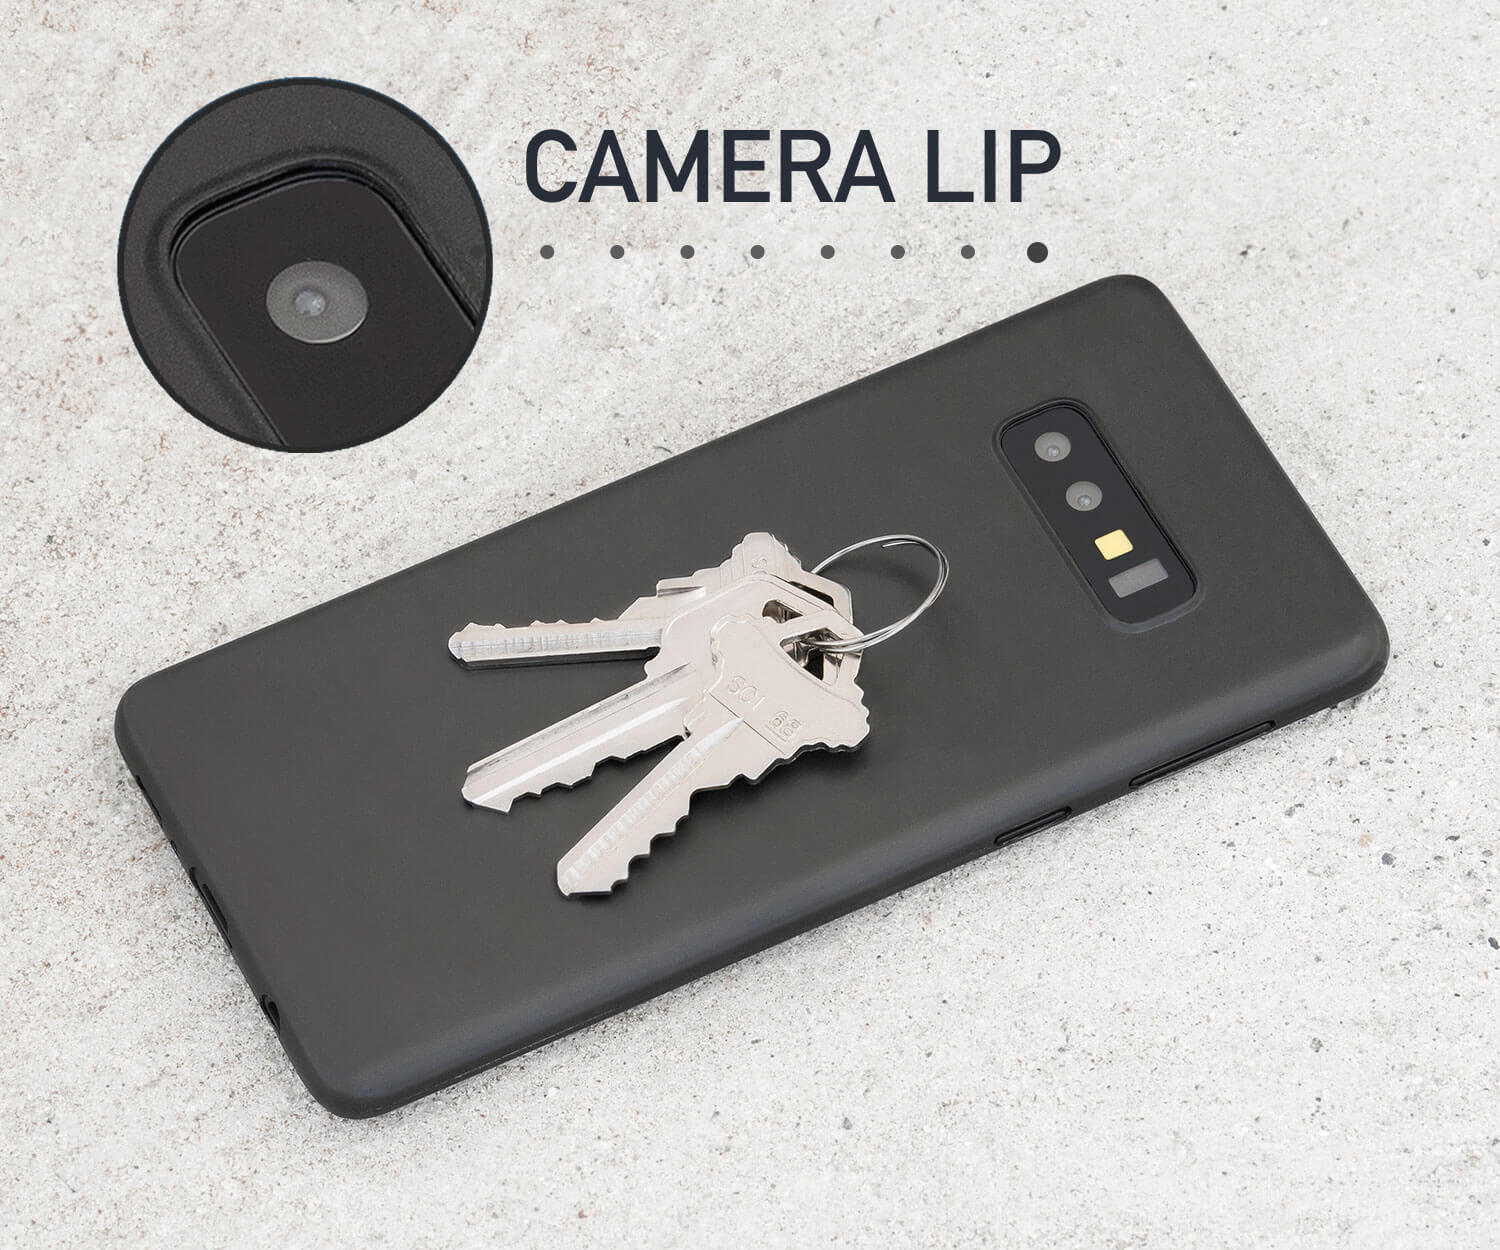 Thin black Galaxy S10e case that adds camera and scratch protection